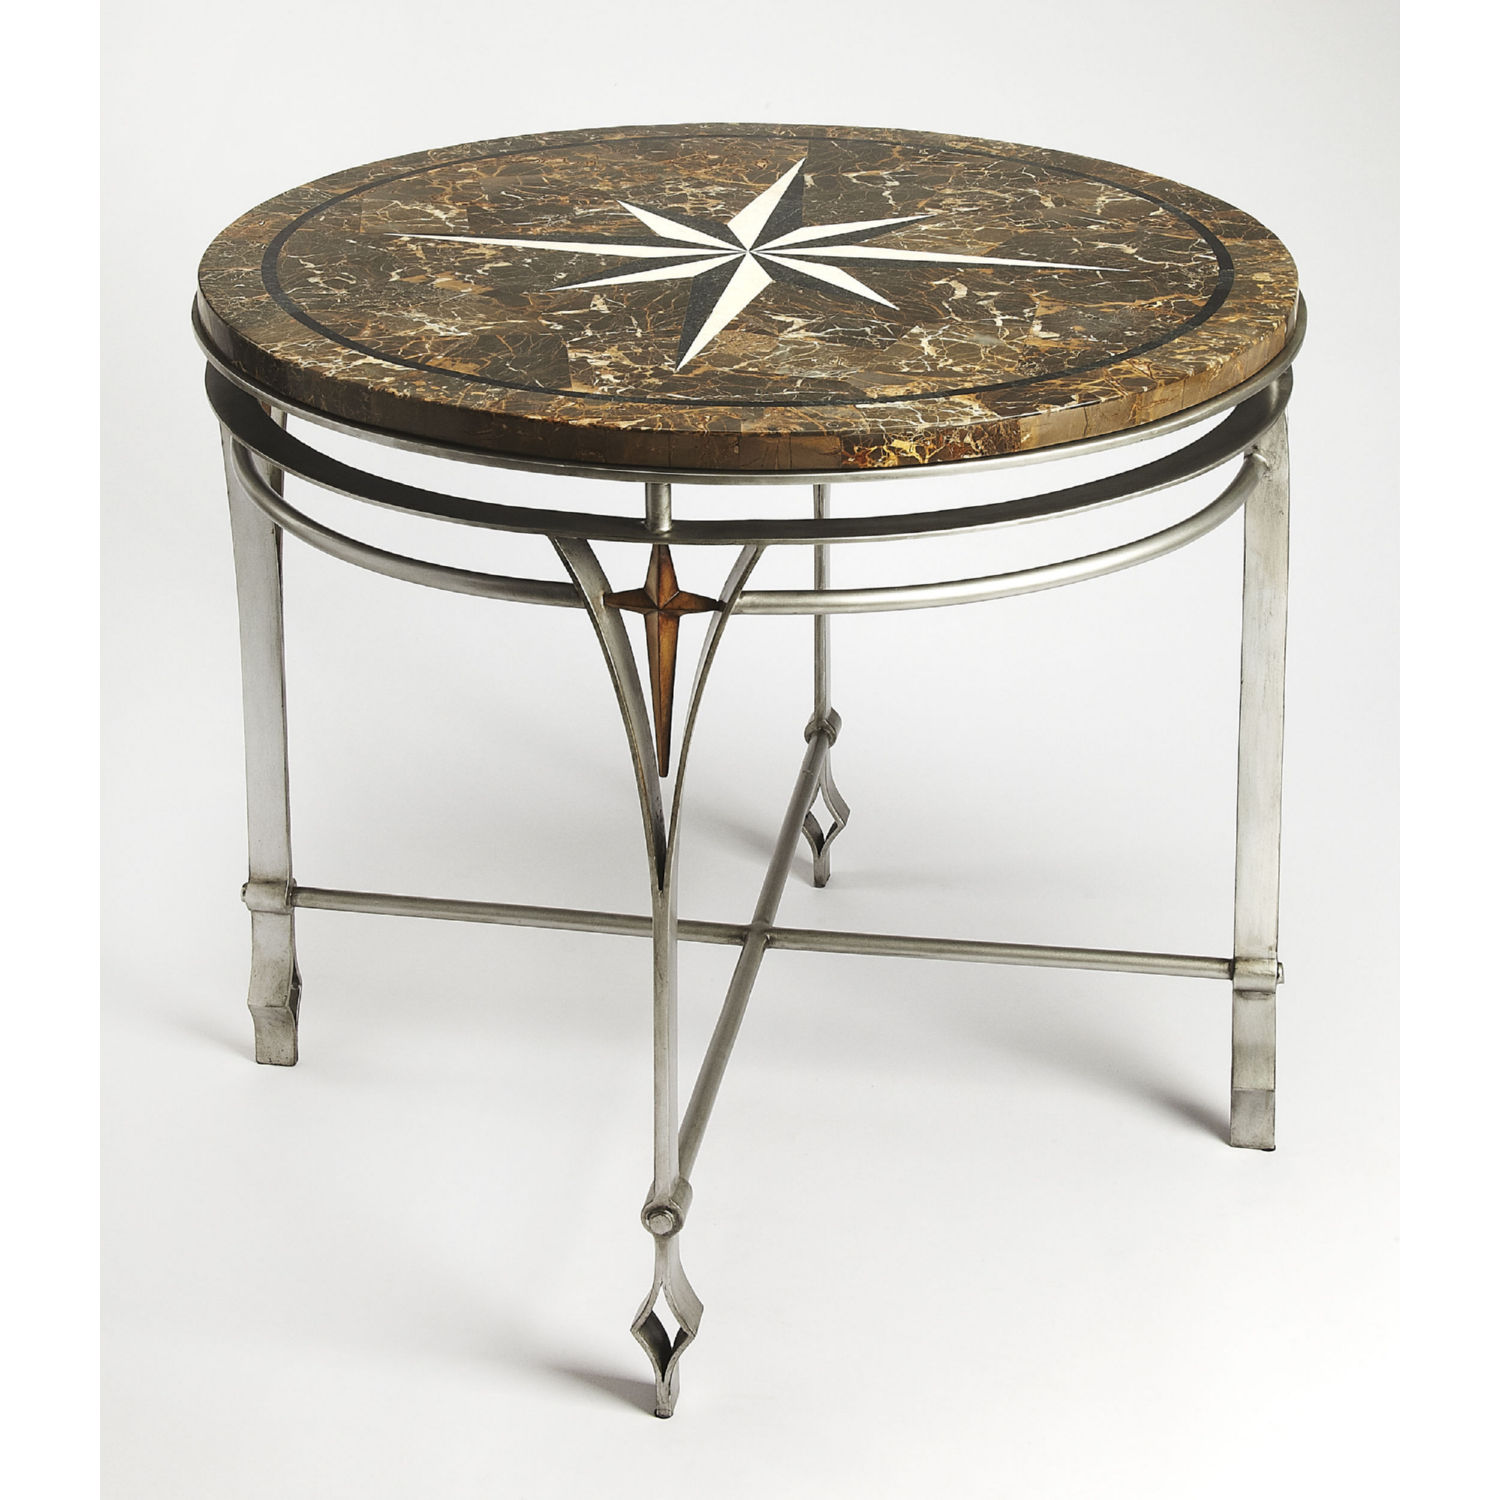 - Butler 5277025 Regina Foyer Accent Table In Fossil Stone & Silver